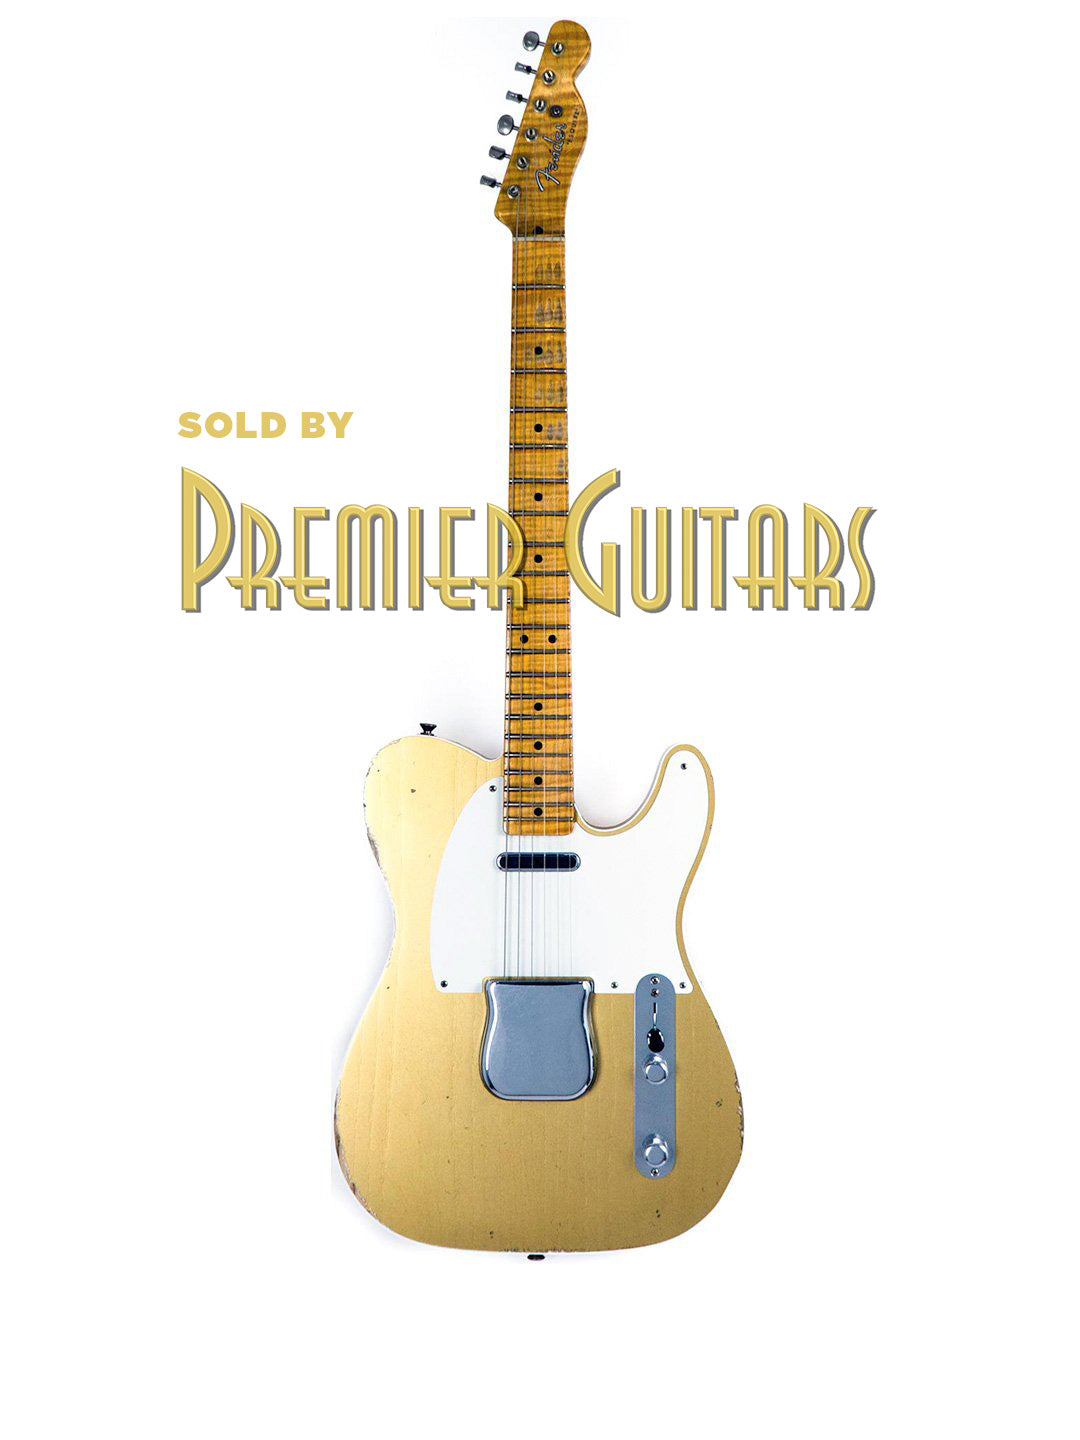 SOLD Fender Custom Shop Limited Edition Double Esquire NAMM Special -Journeyman Relic Aztec Gold - USA 2018 - $5,495.00